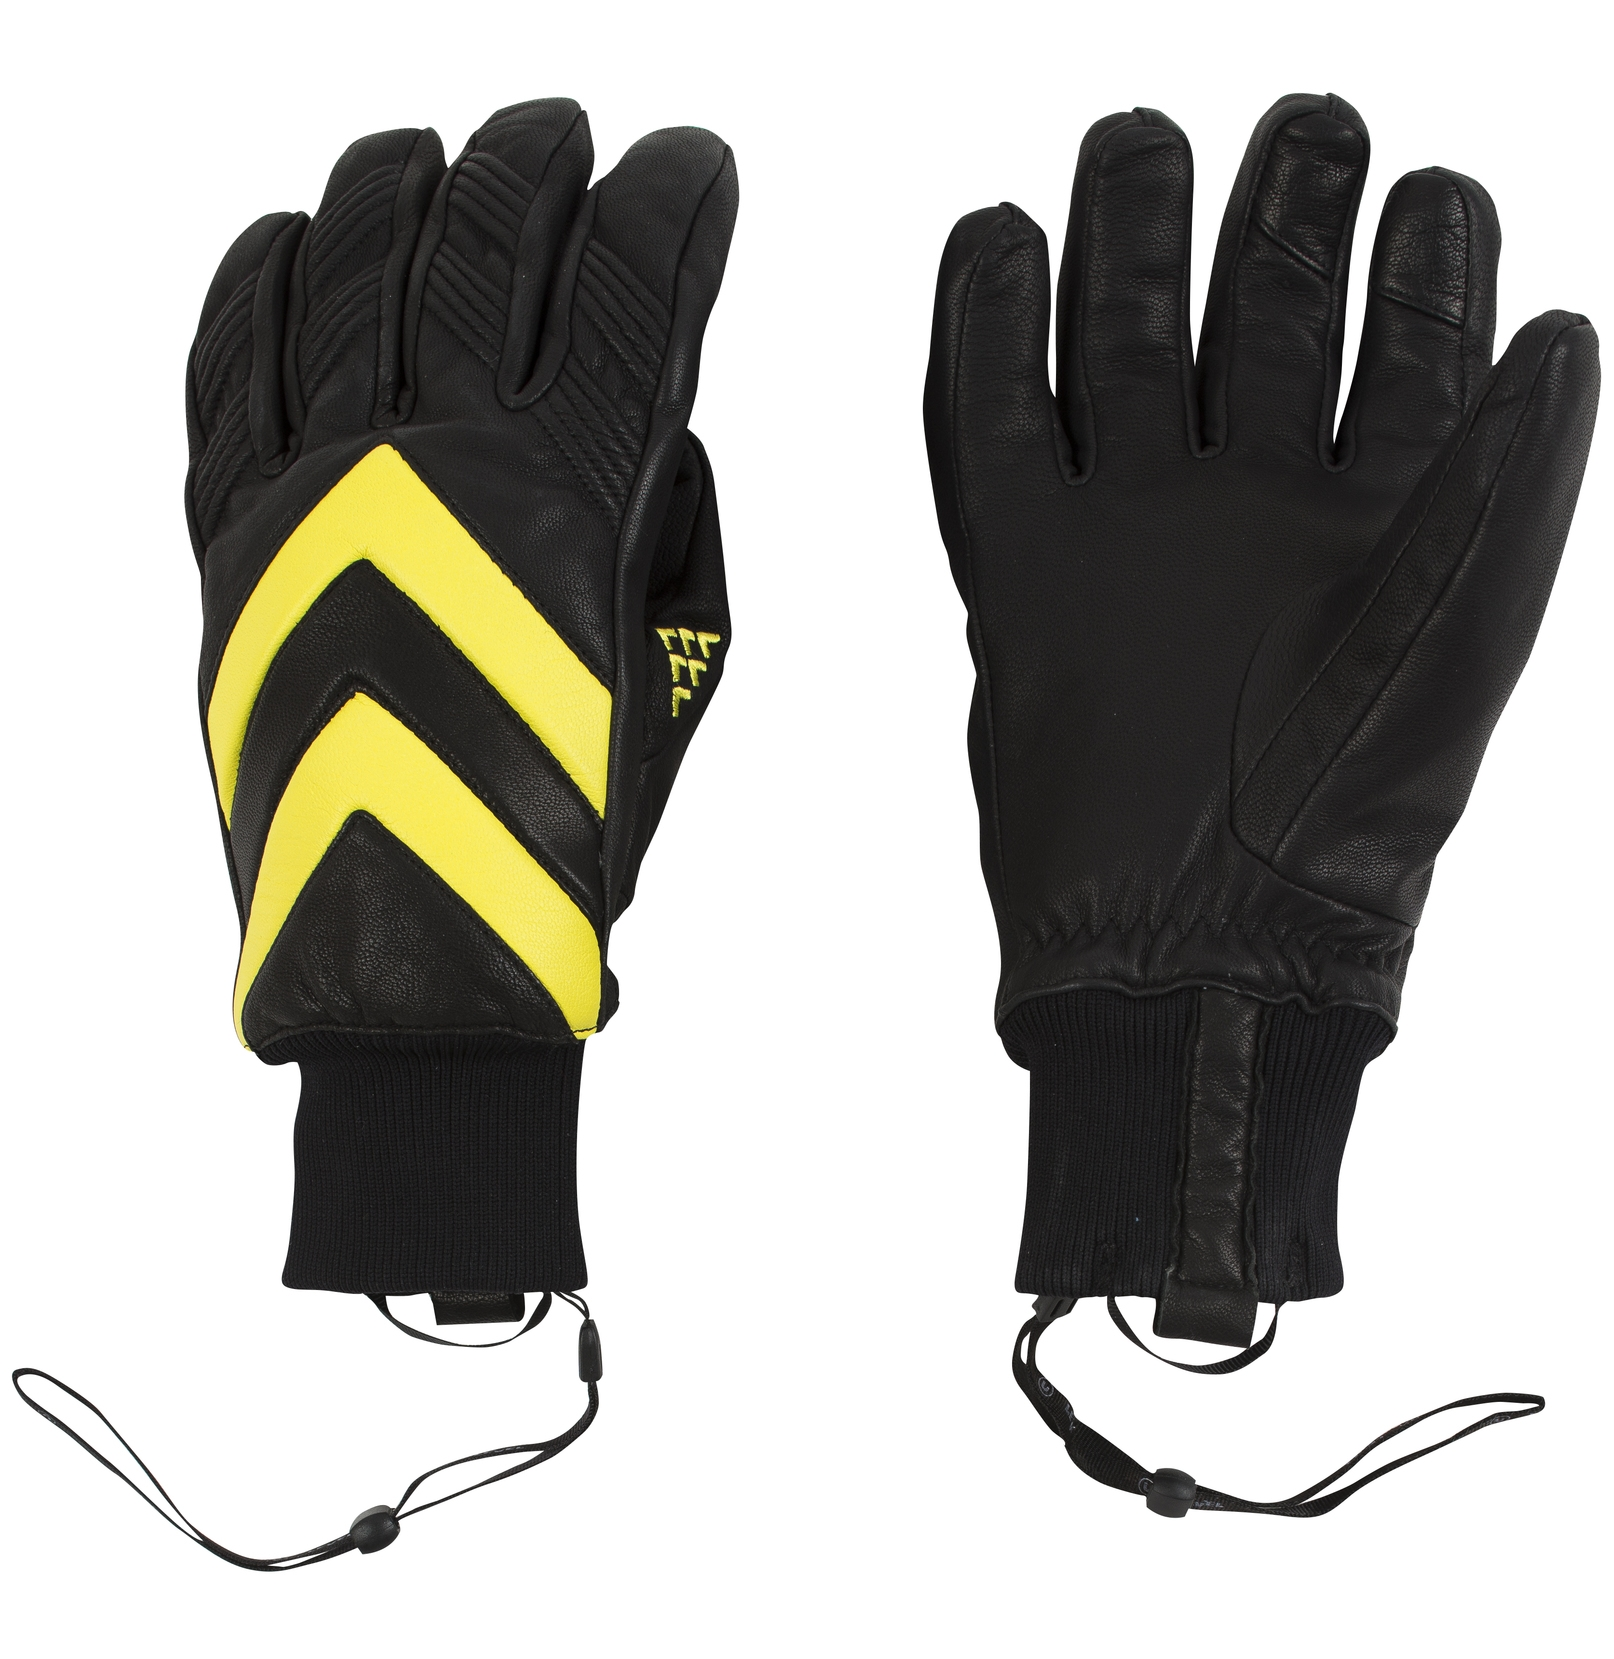 Black Crows Manis Gloves, $140